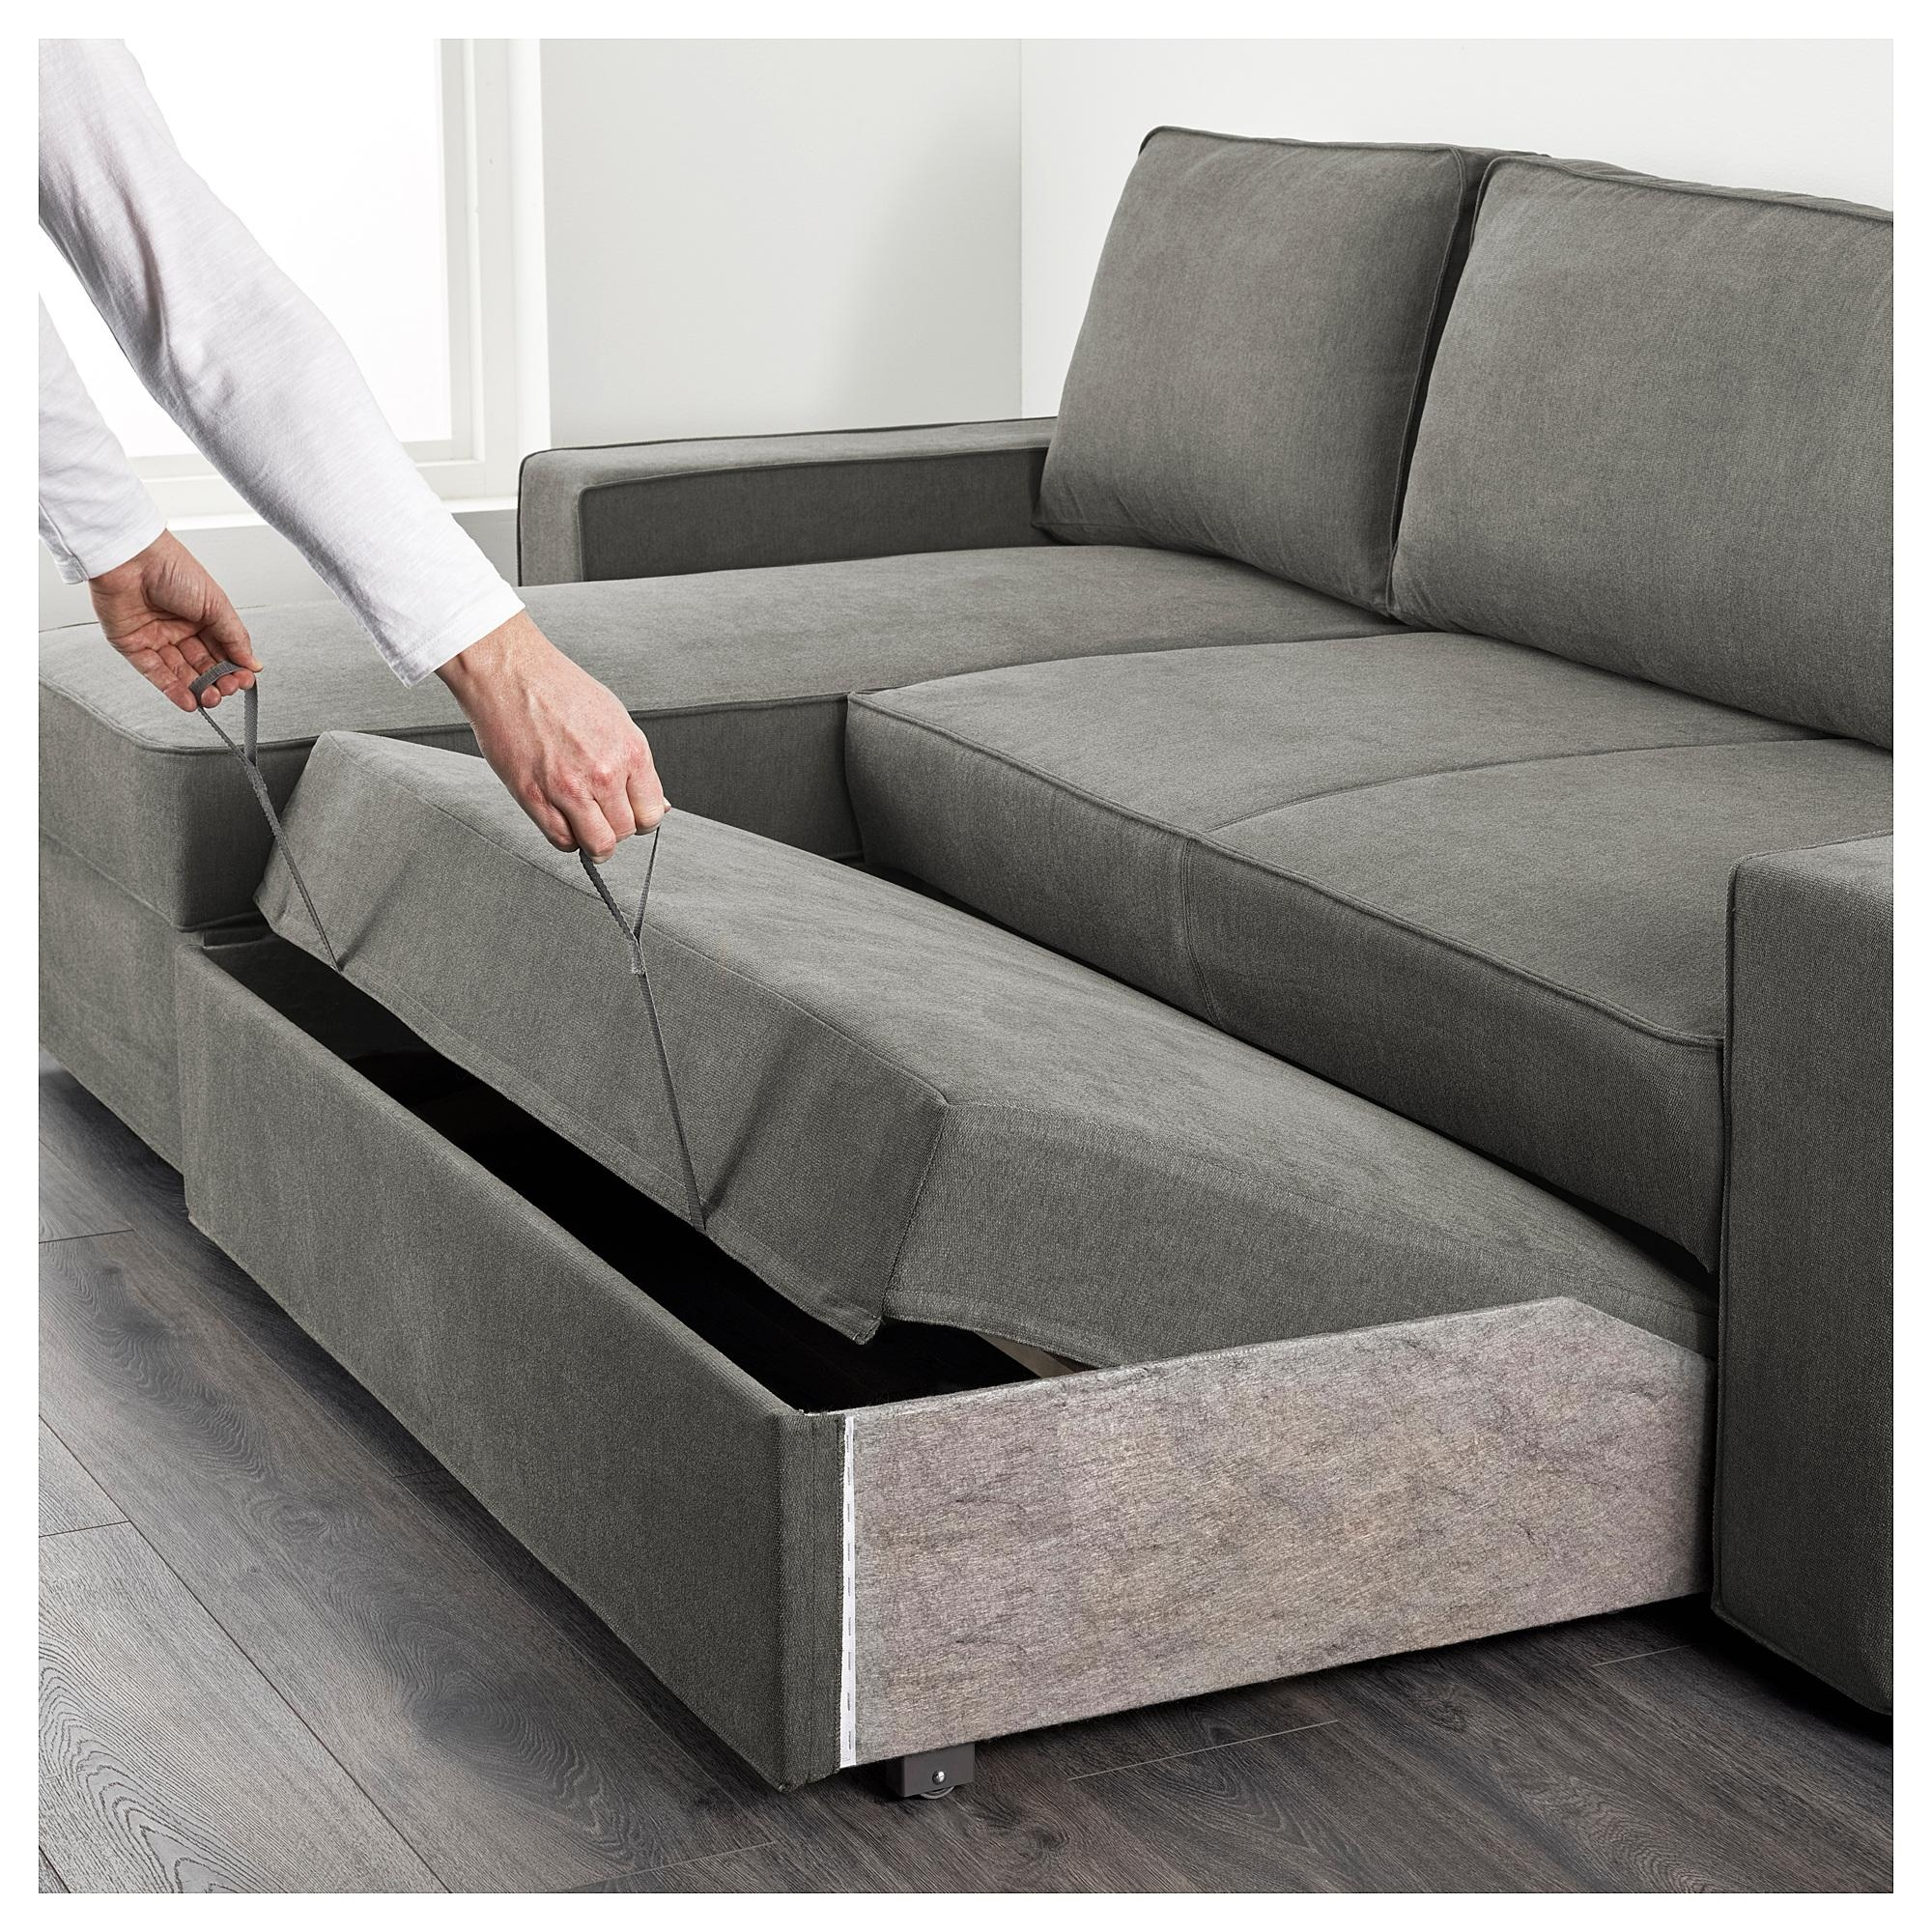 Vilasund Sofa Bed With Chaise Longue Borred Grey-Green - Ikea for Chaise Longue Sofa Beds